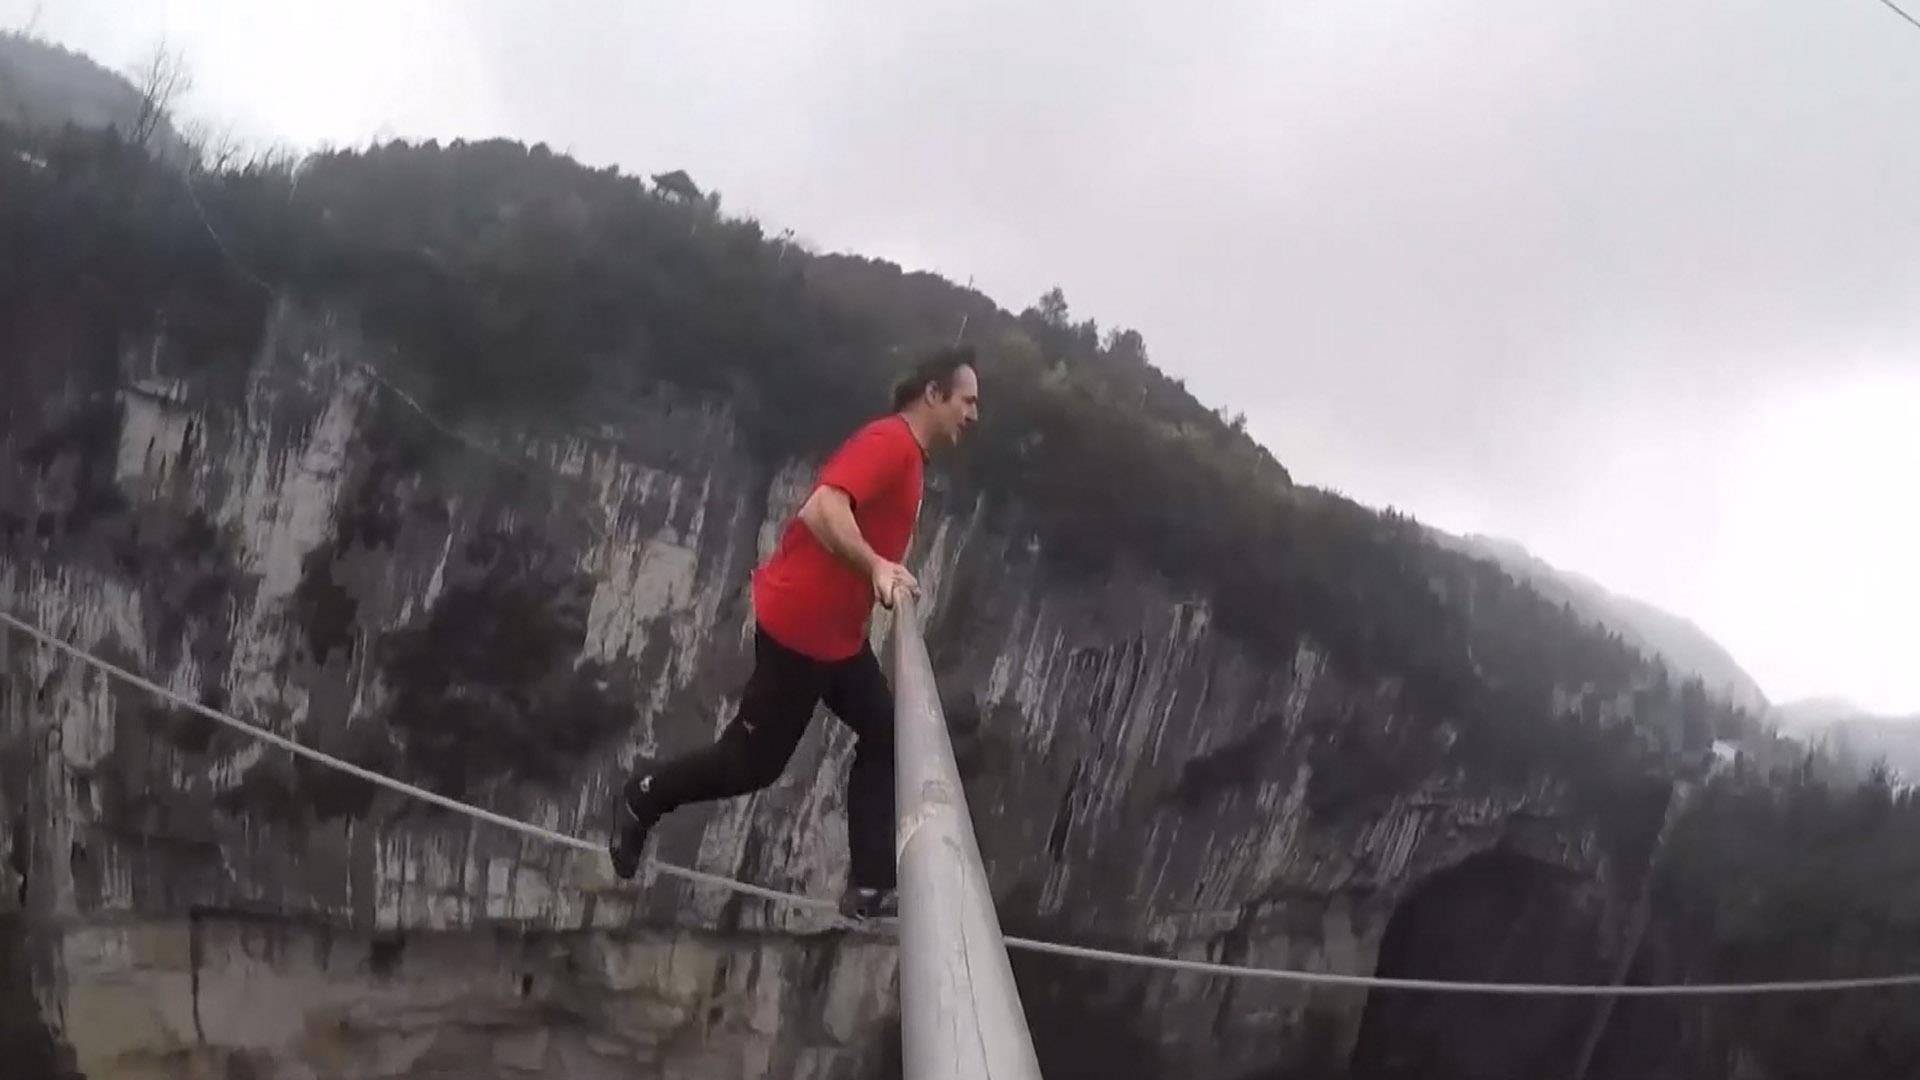 Watch Contestants Brave Heights in Tightrope Contest